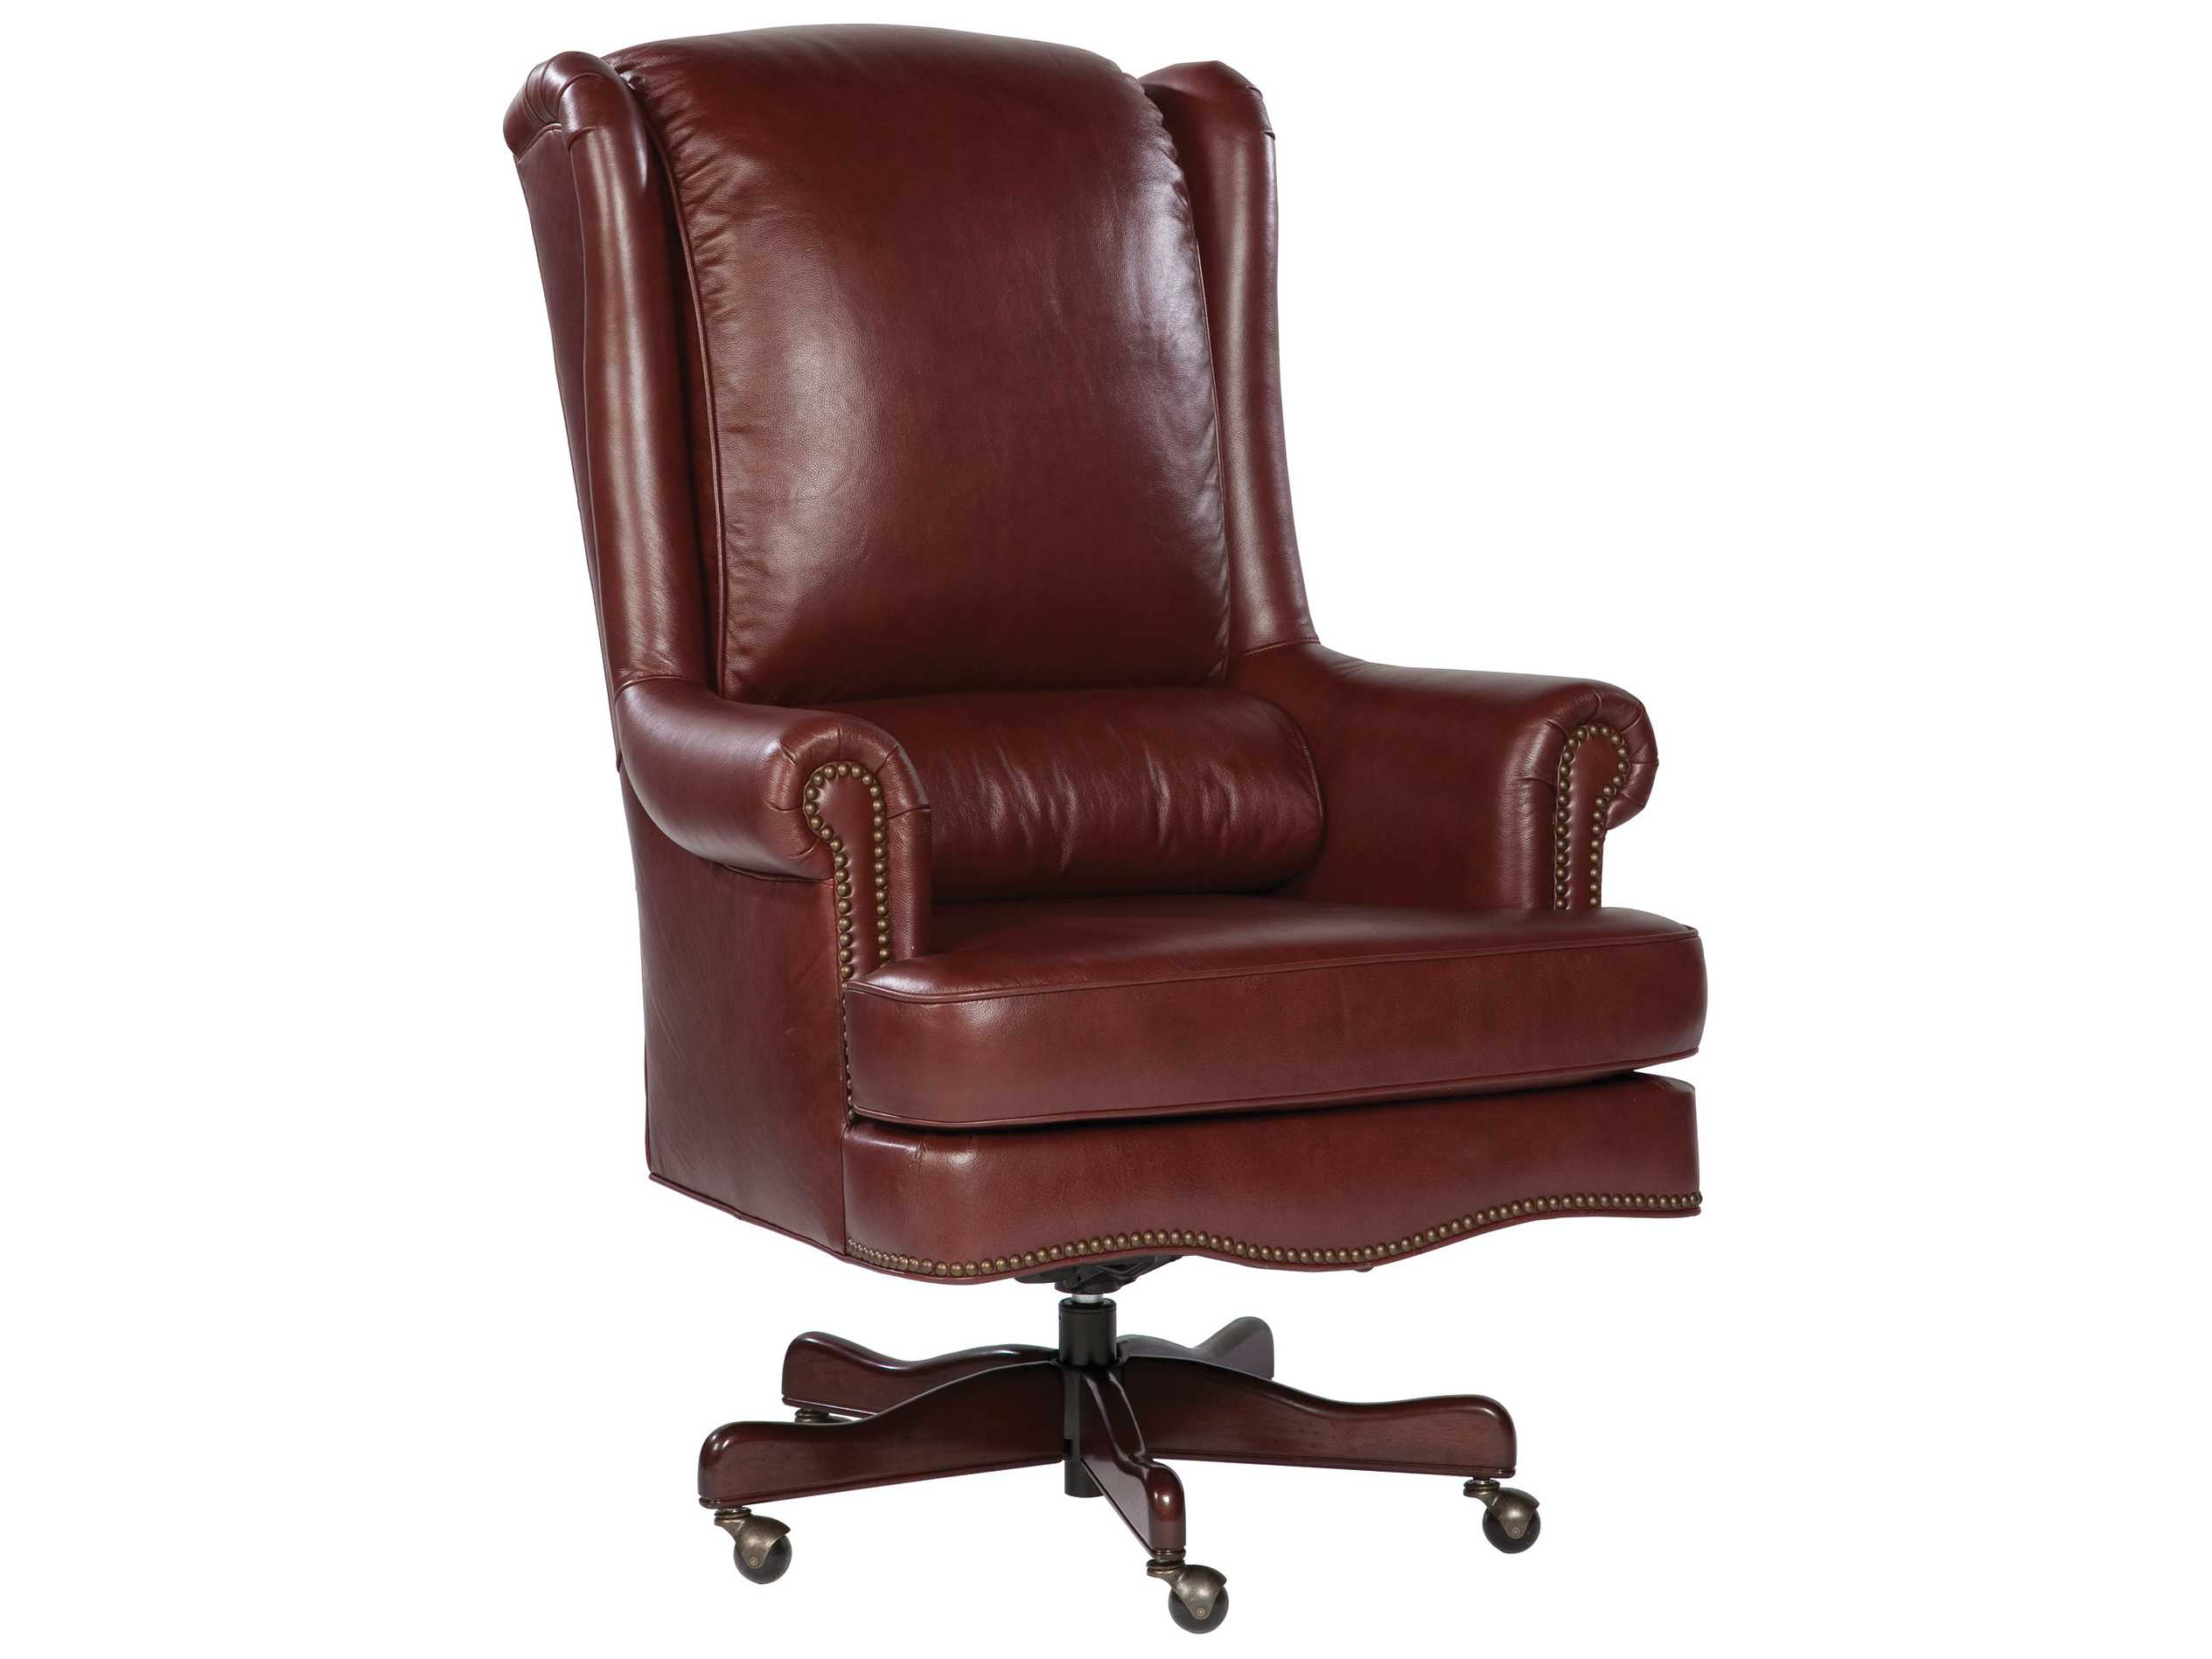 office executive leather chair with lumbar pillow in merlot office